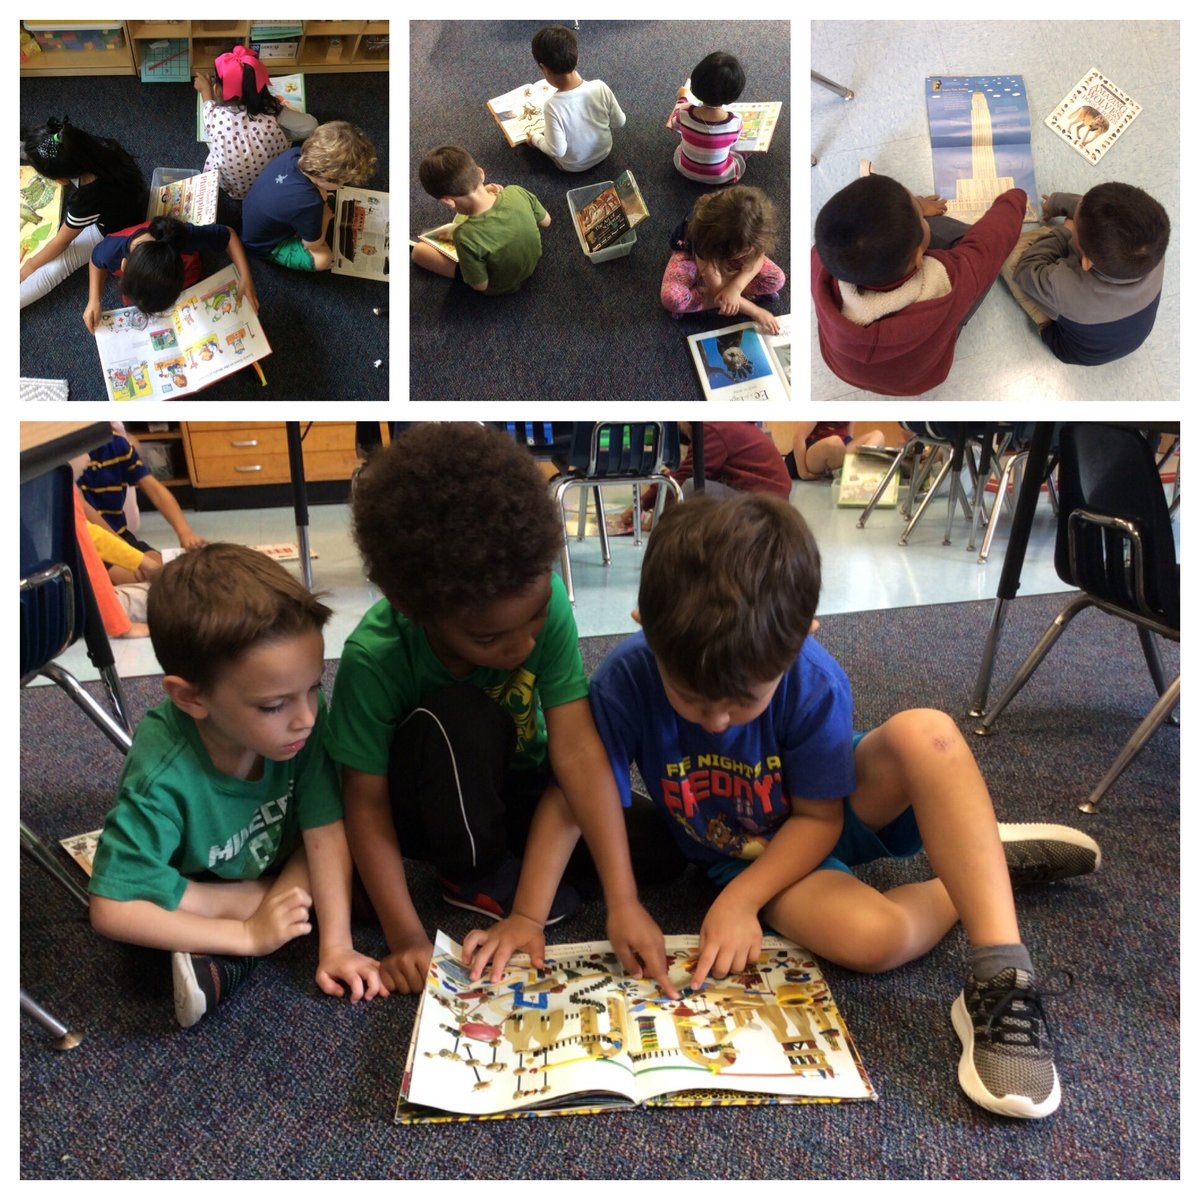 Kinder students engage with nonfiction books independently and then with partners. <a target='_blank' href='http://twitter.com/CampbellAPS'>@CampbellAPS</a> <a target='_blank' href='https://t.co/0rXX1F9yfL'>https://t.co/0rXX1F9yfL</a>